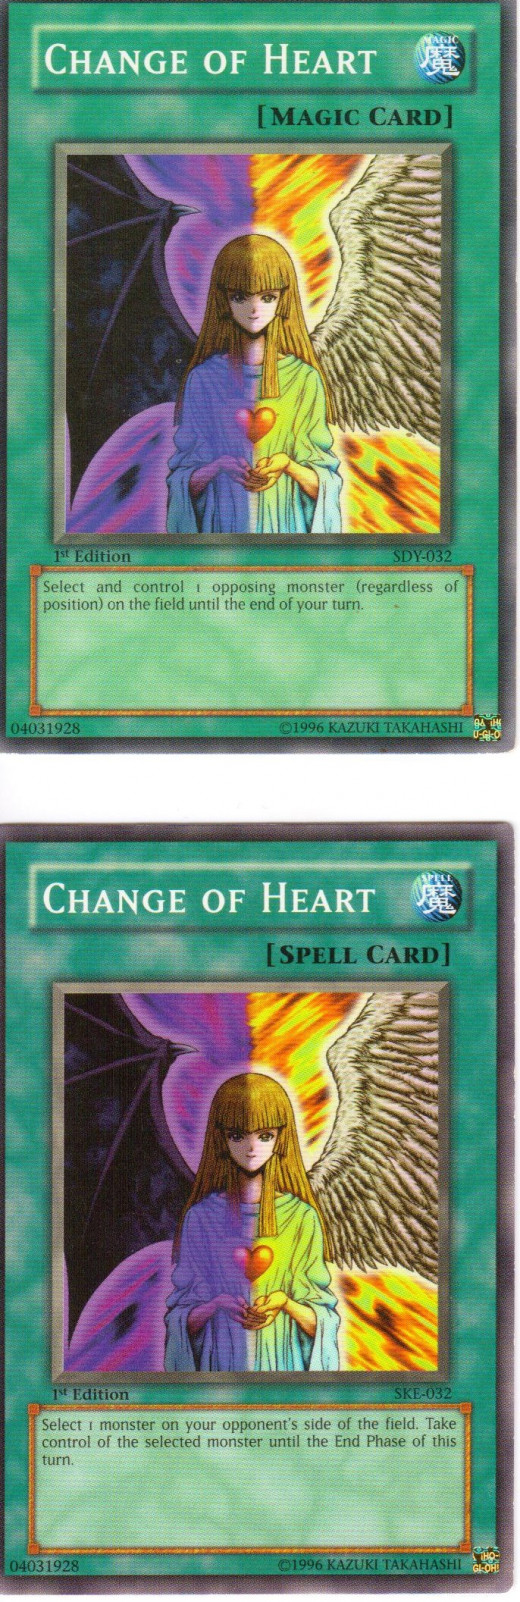 Spell card and Magic card versions of the same card